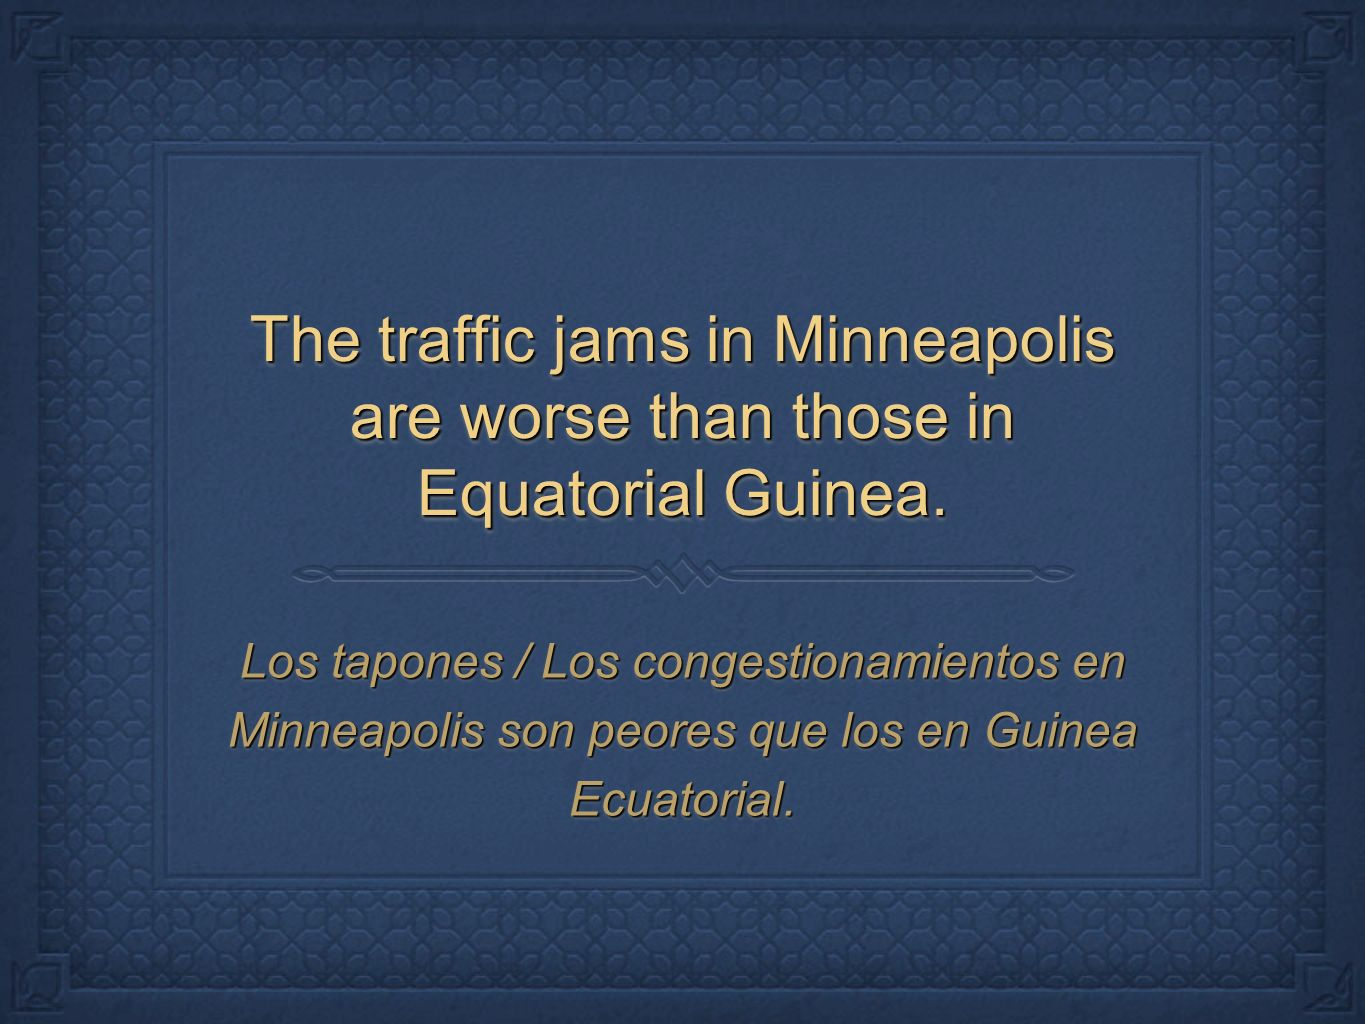 The traffic jams in Minneapolis are worse than those in Equatorial Guinea.